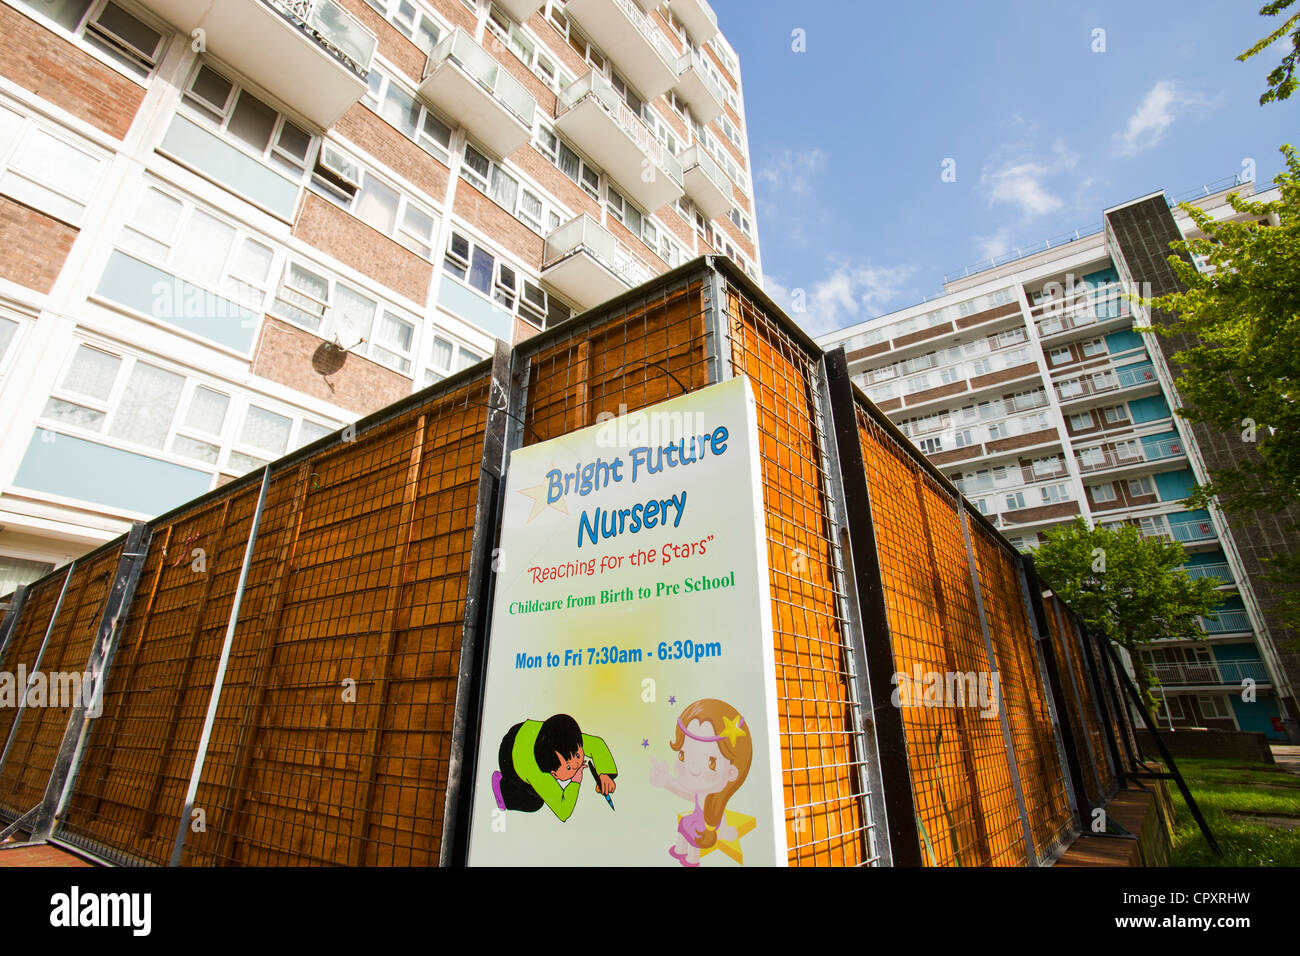 A child nursery by run down council flats in Queens Park, London, UK. - Stock Image